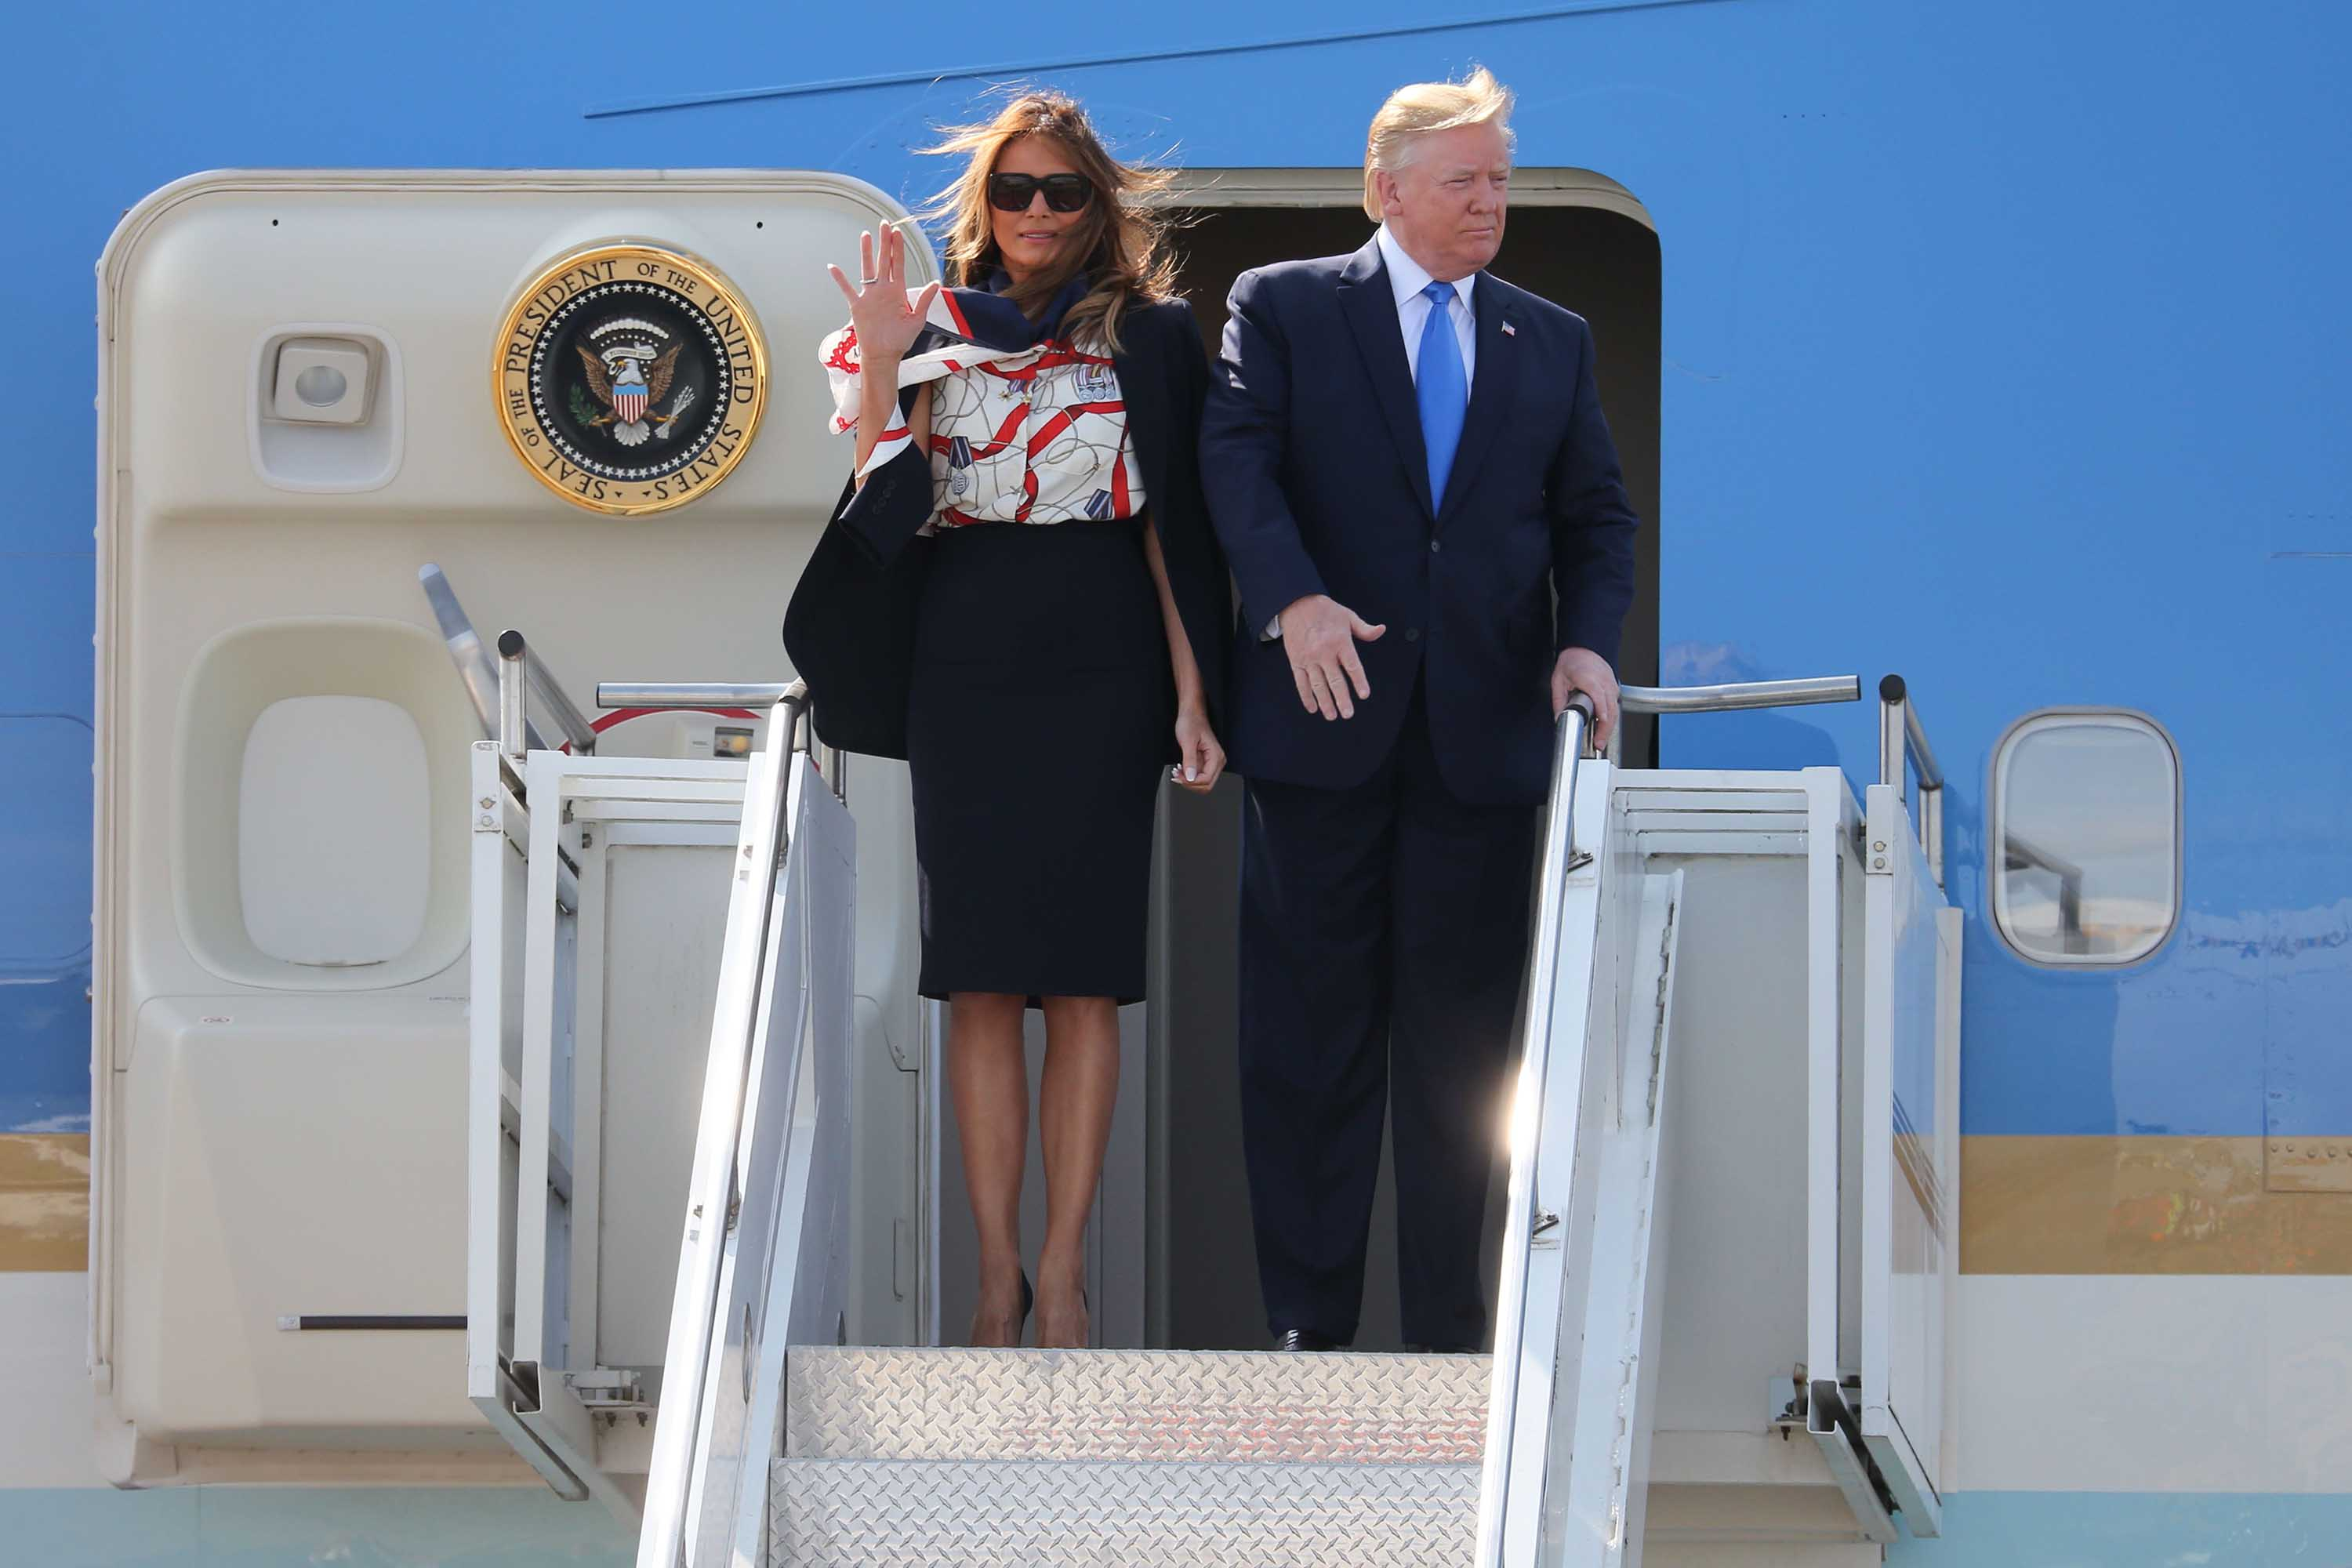 Inside Melania Trump's unprecedented campaign trail absence